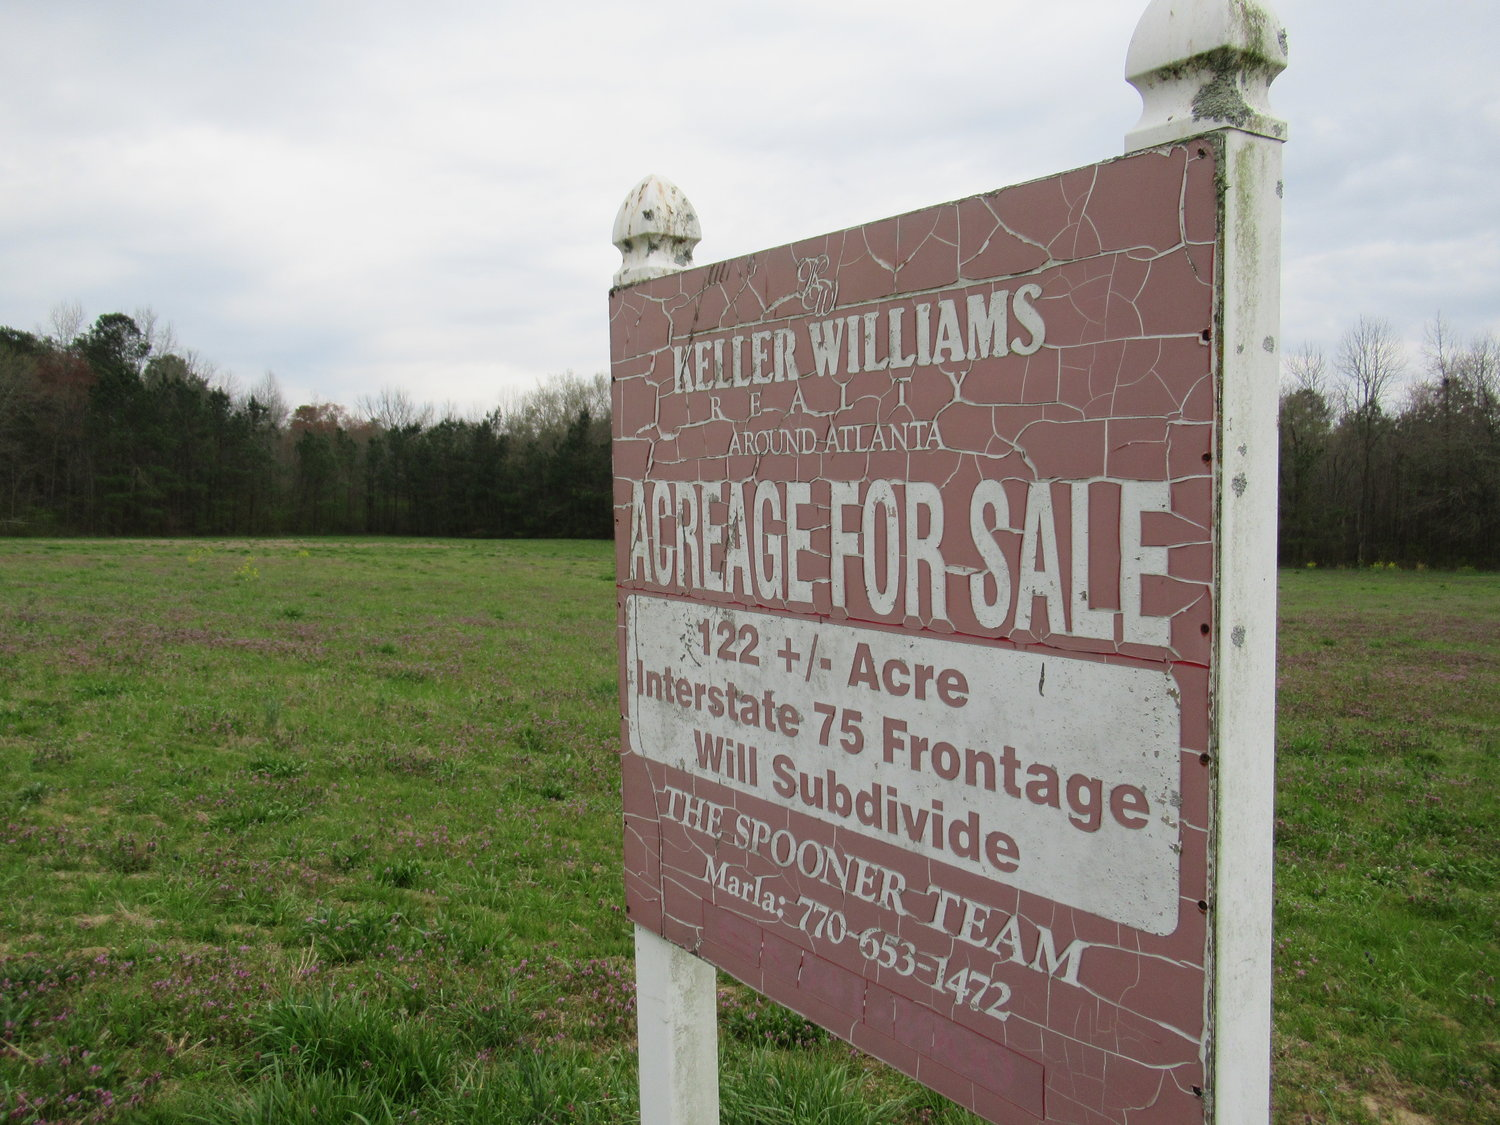 A real estate developer with plans to construct a 1-million-square-foot distribution center along Spring Place Road will have to wait at least six months to refile a rezoning application after failing to comply with the County's public notice procedures.